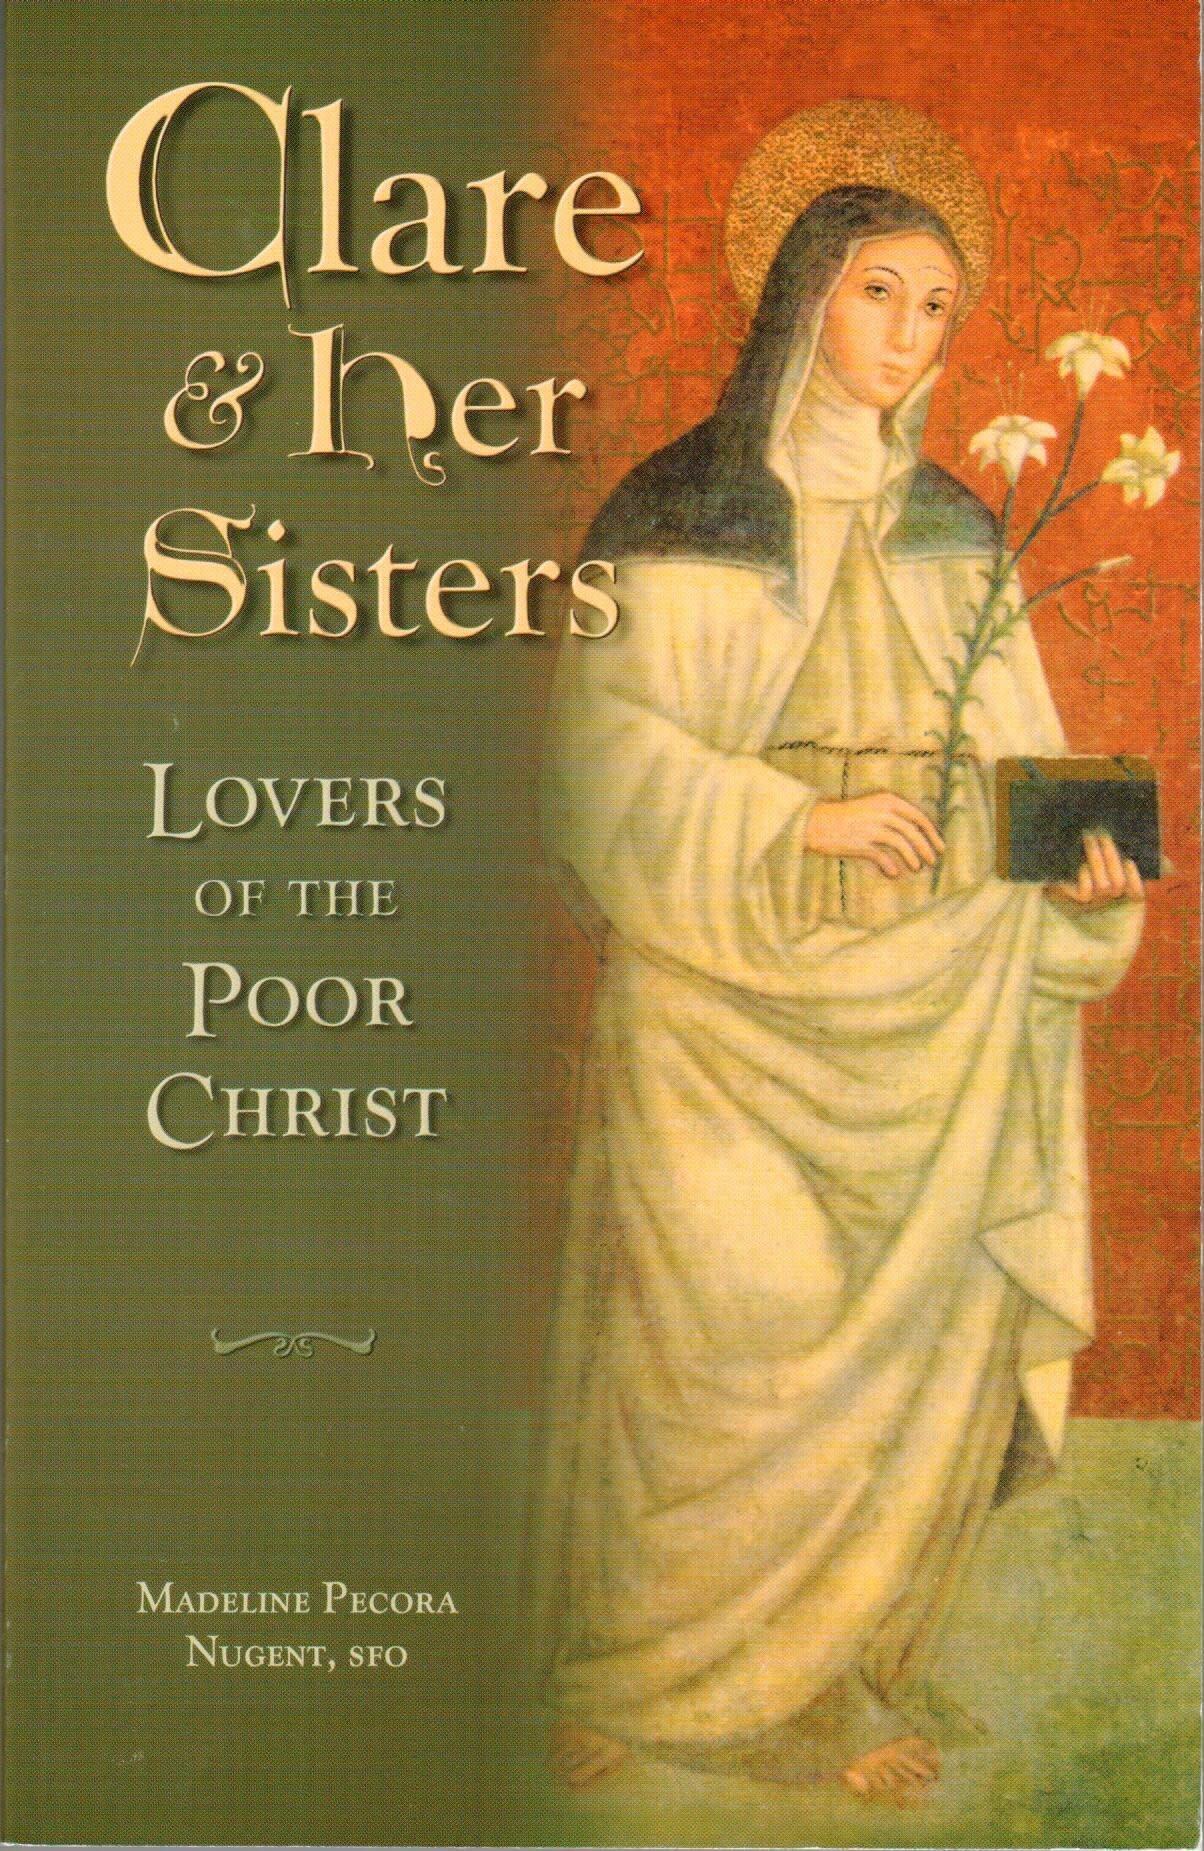 Clare & Her Sisters: Lovers Of the Poor Christ